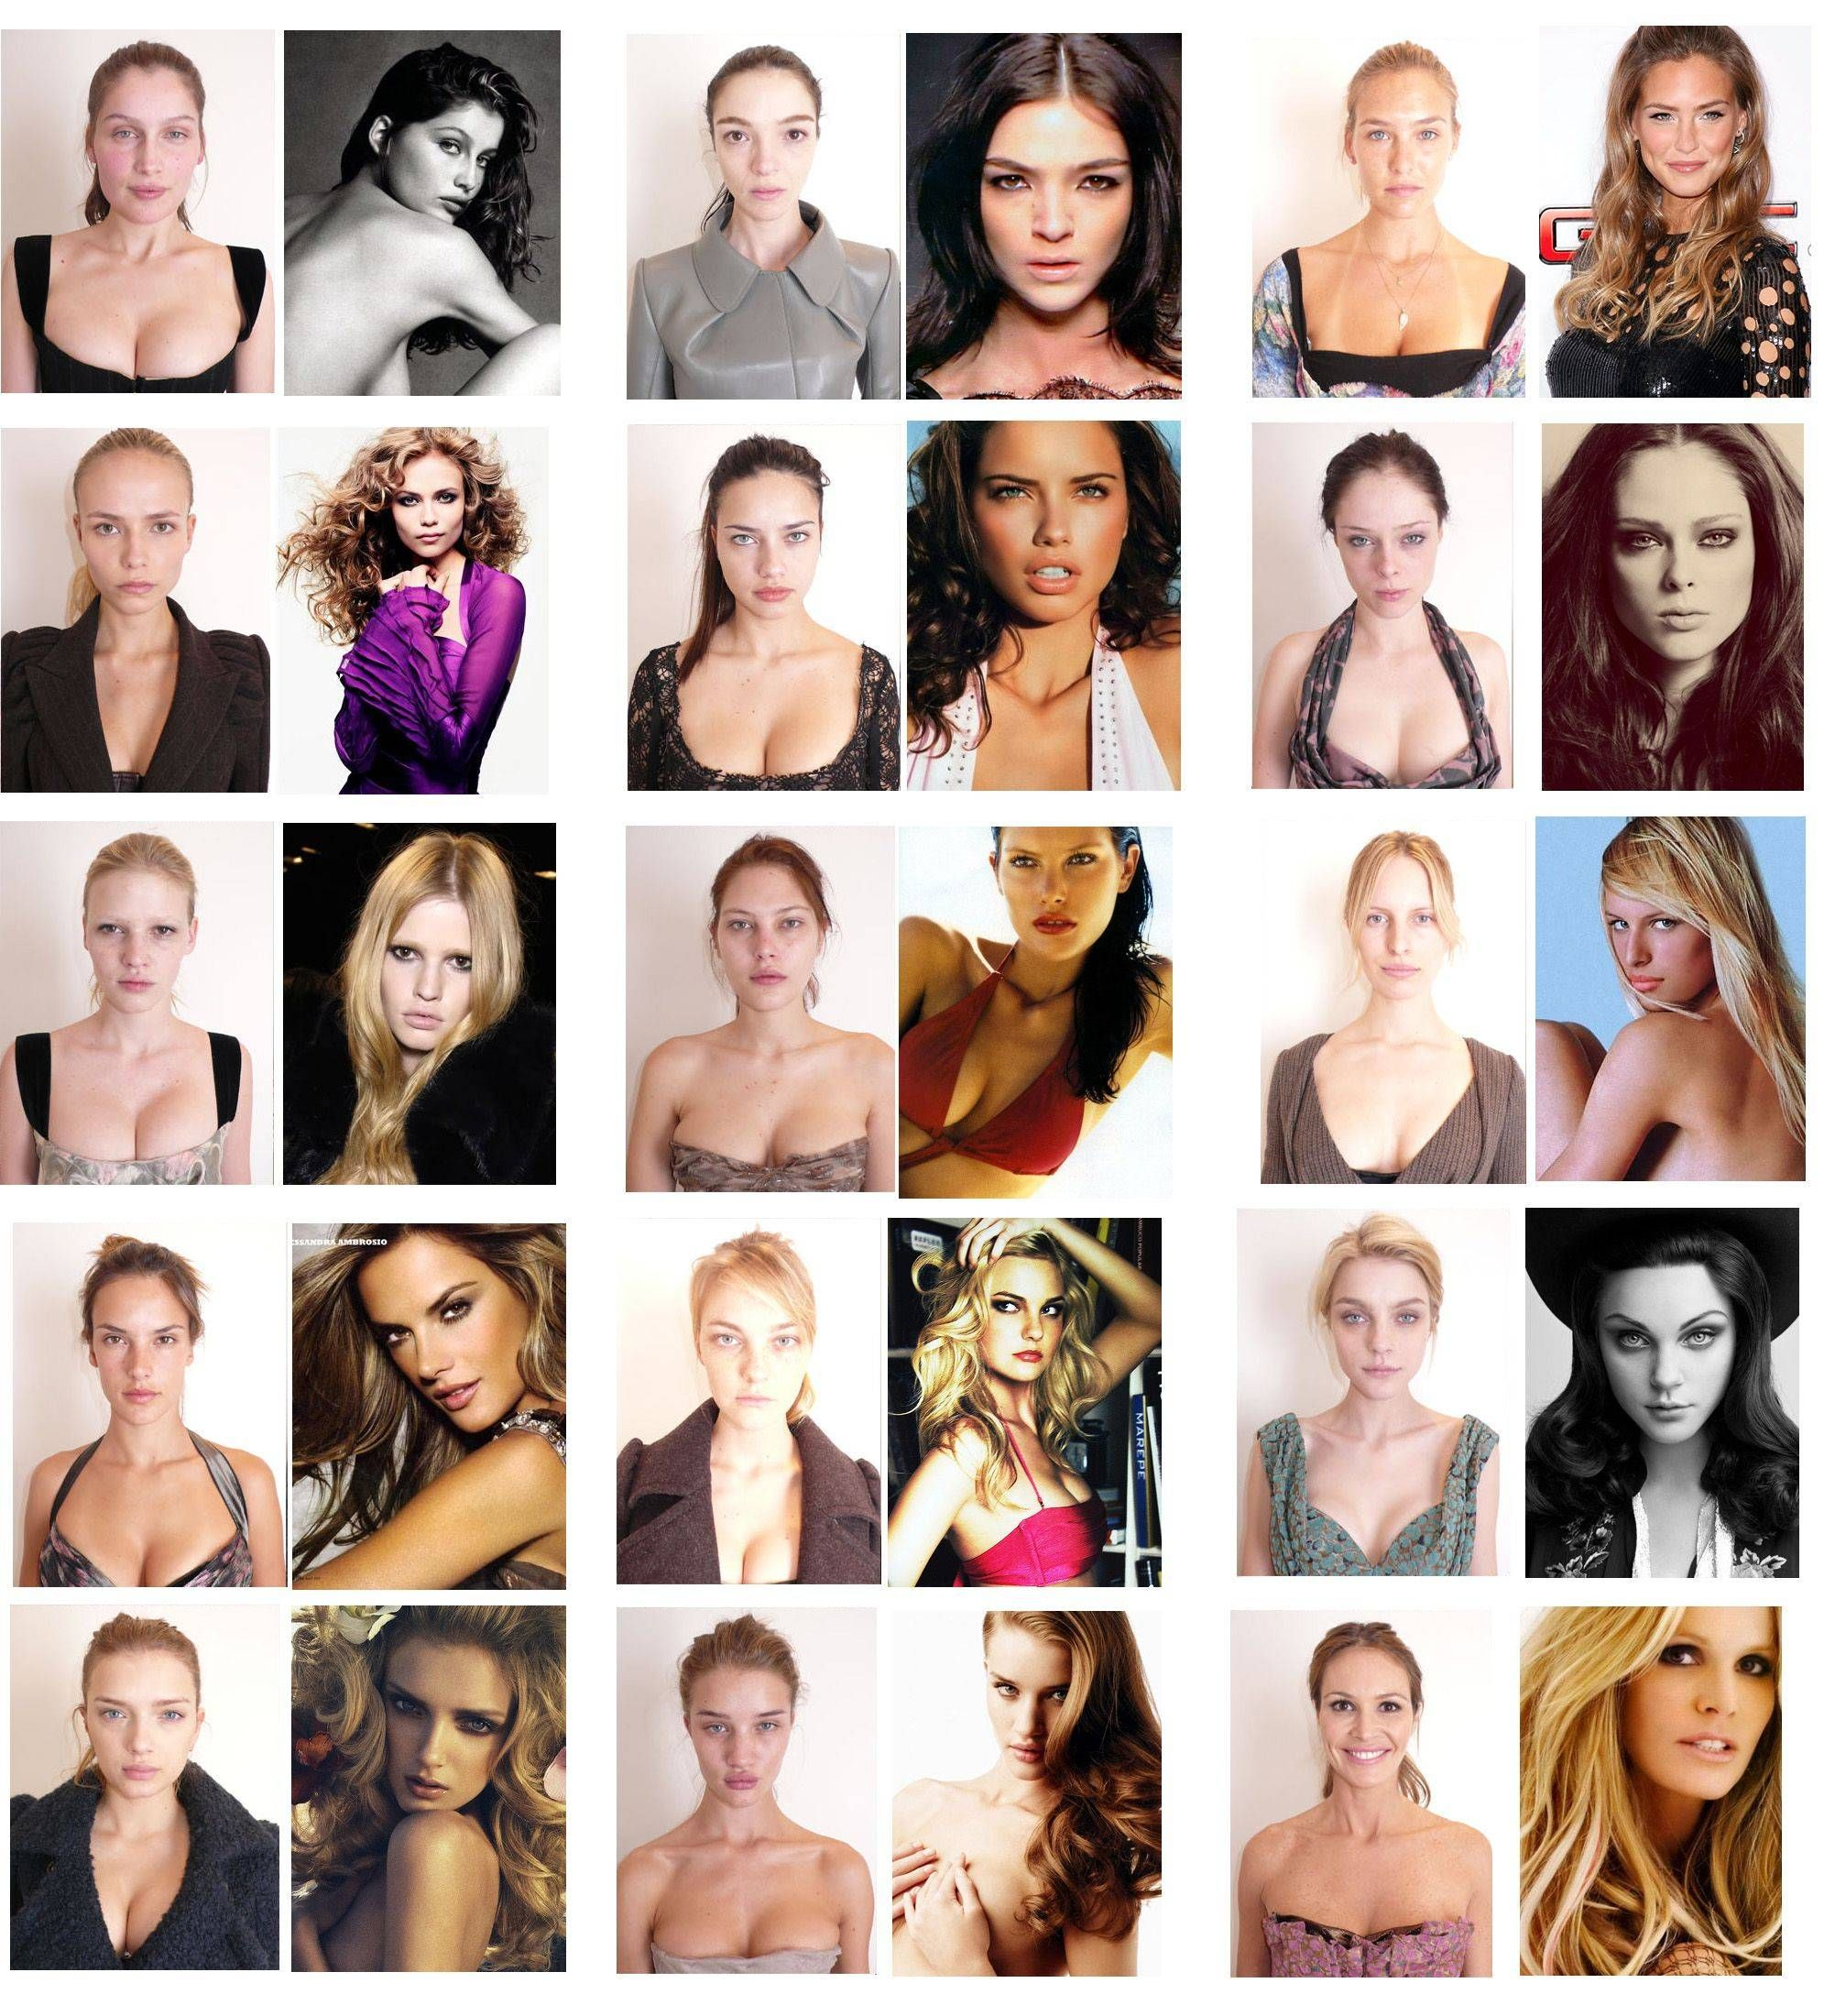 97 best images about Models/Celebs Without Photoshop on